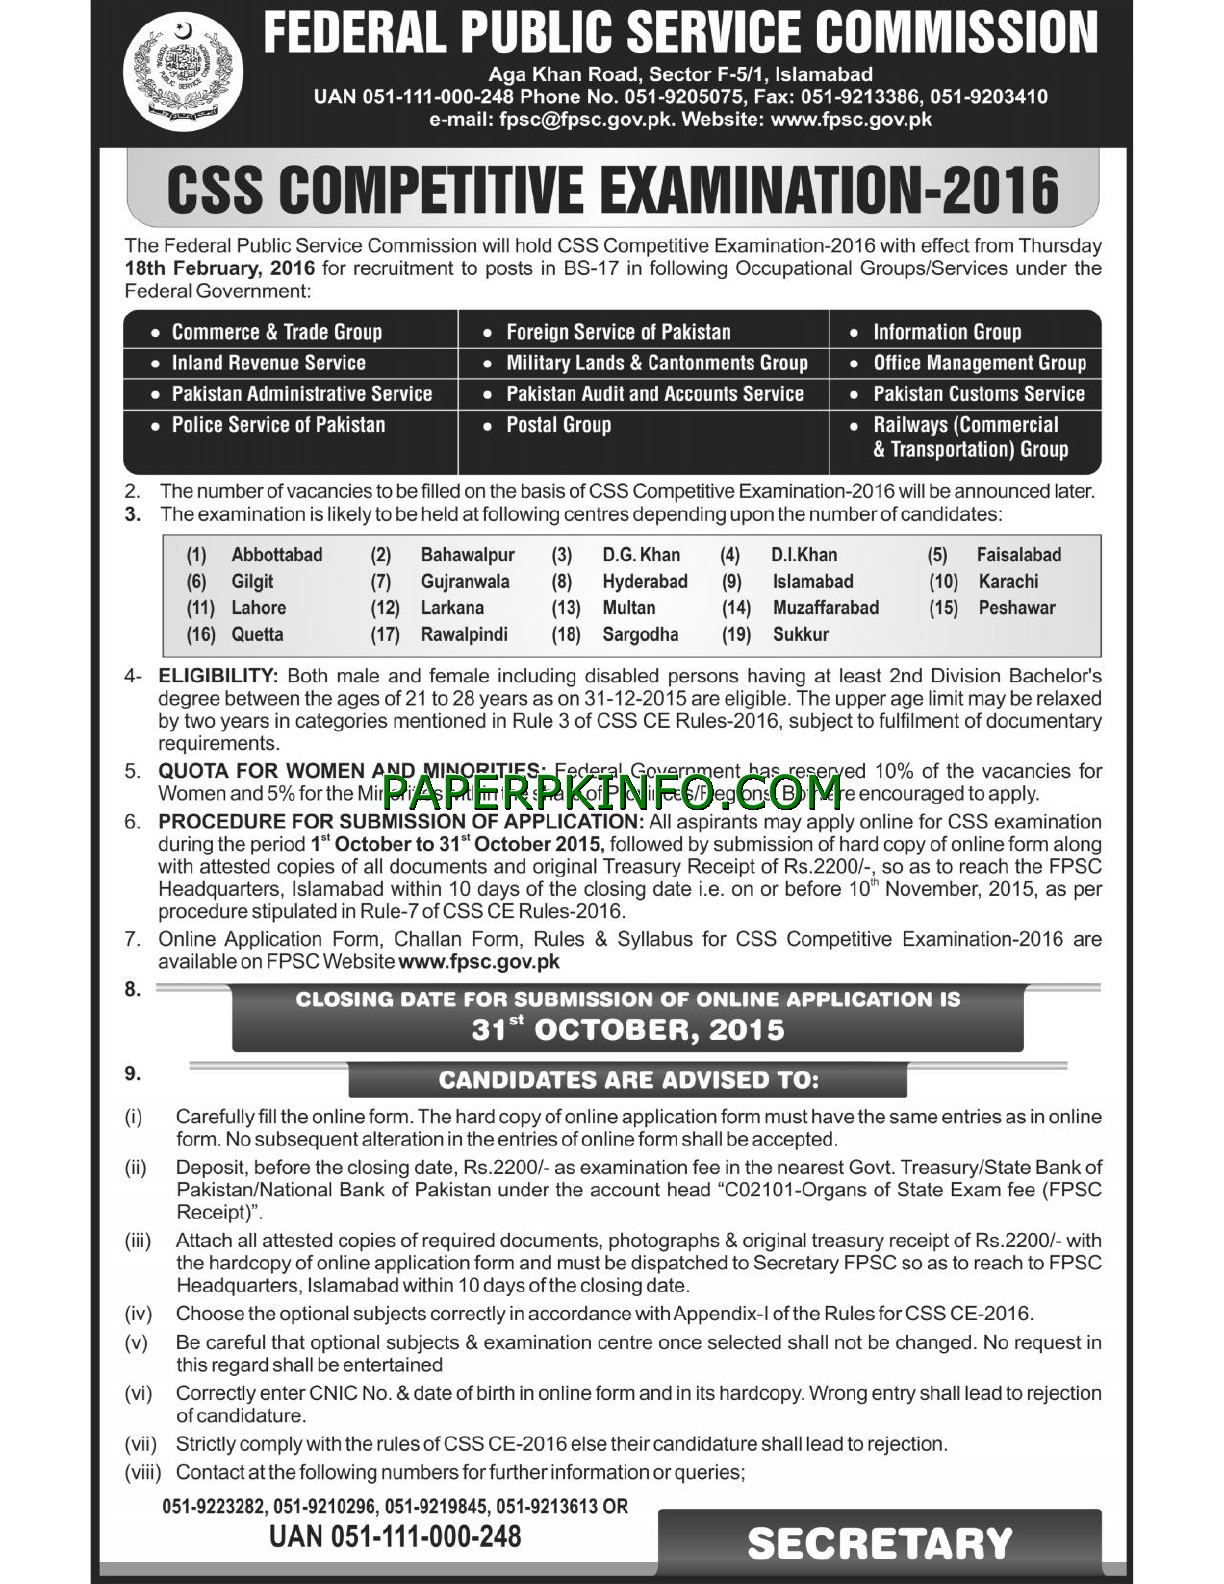 FPSC CE-2016 Notice for Invitation of Applications - Paperpkinfo